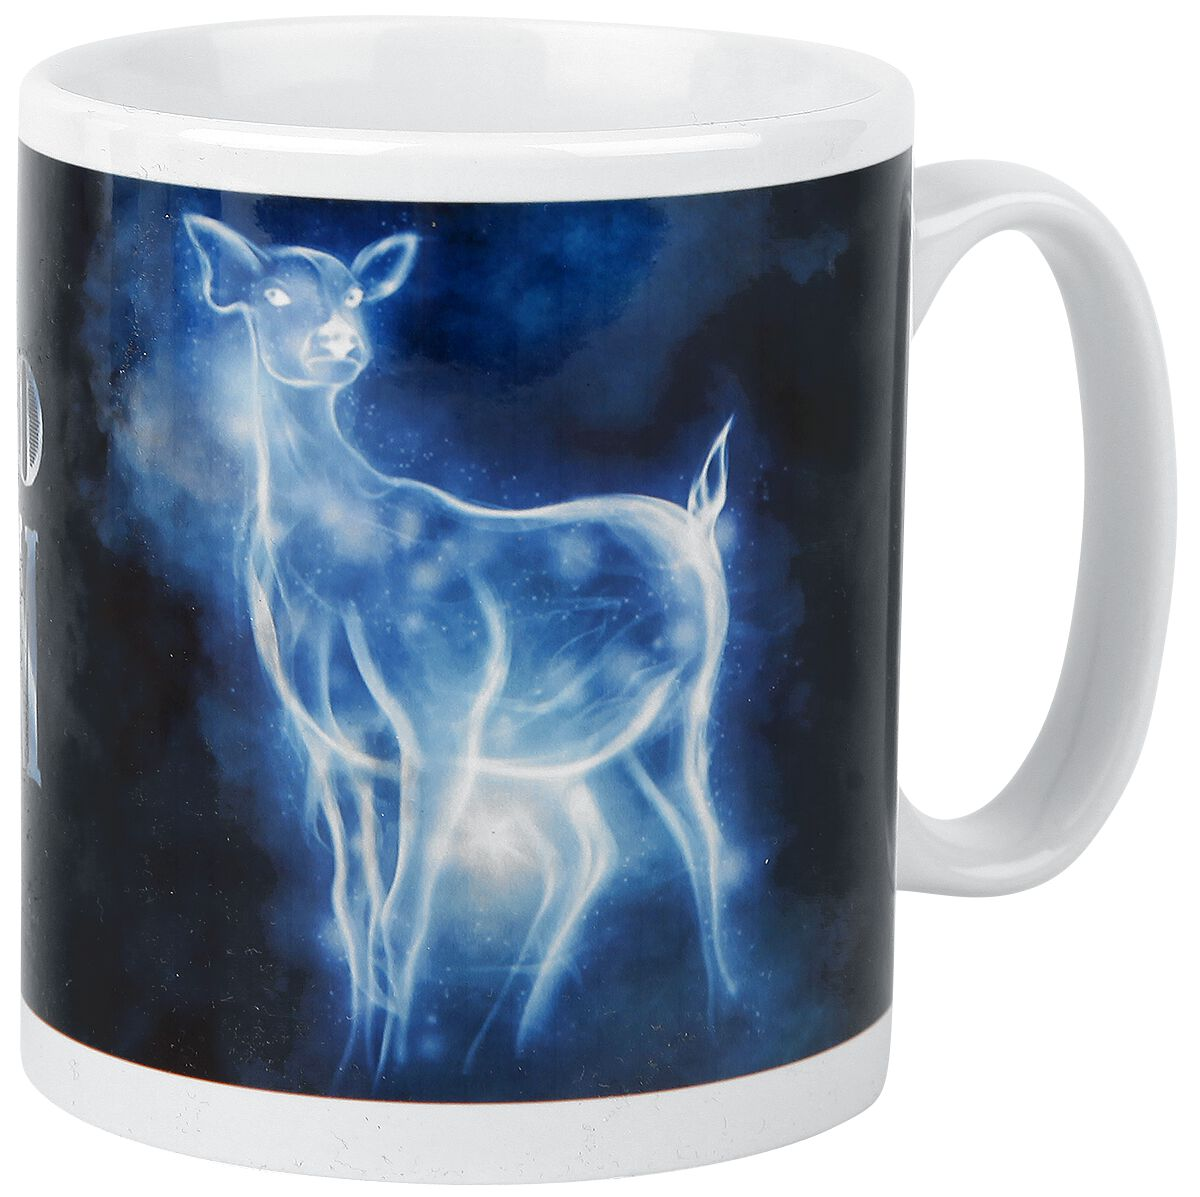 Image of   Harry Potter Expecto Patronum Krus hvid